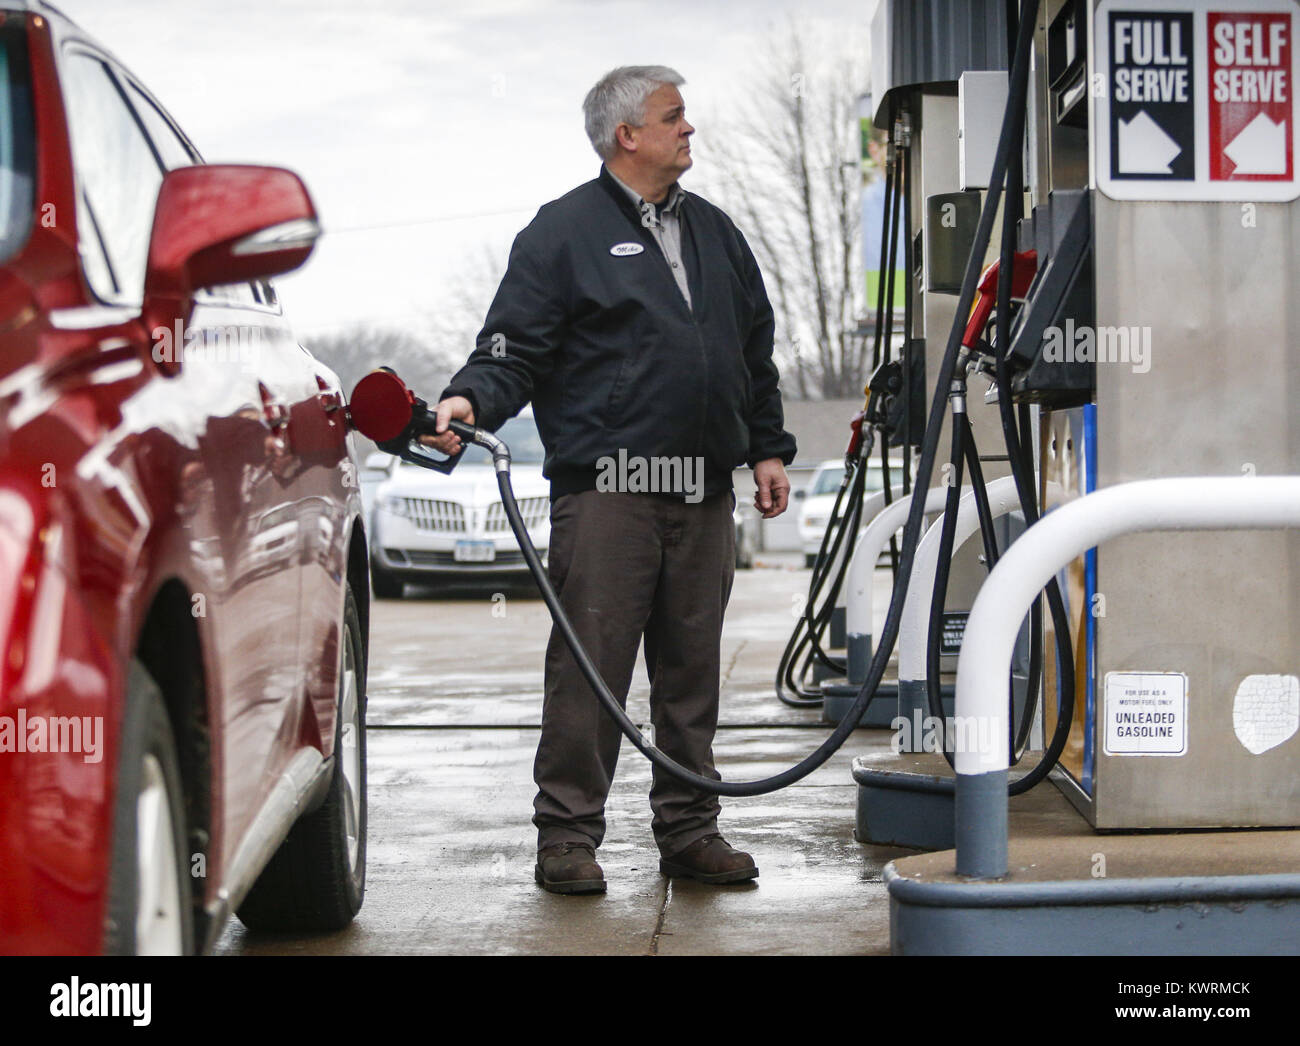 Davenport, Iowa, USA. 19th Jan, 2017. Mechanic Mike Waite fills up a customer's car with gas at Dittmer's - Stock Image